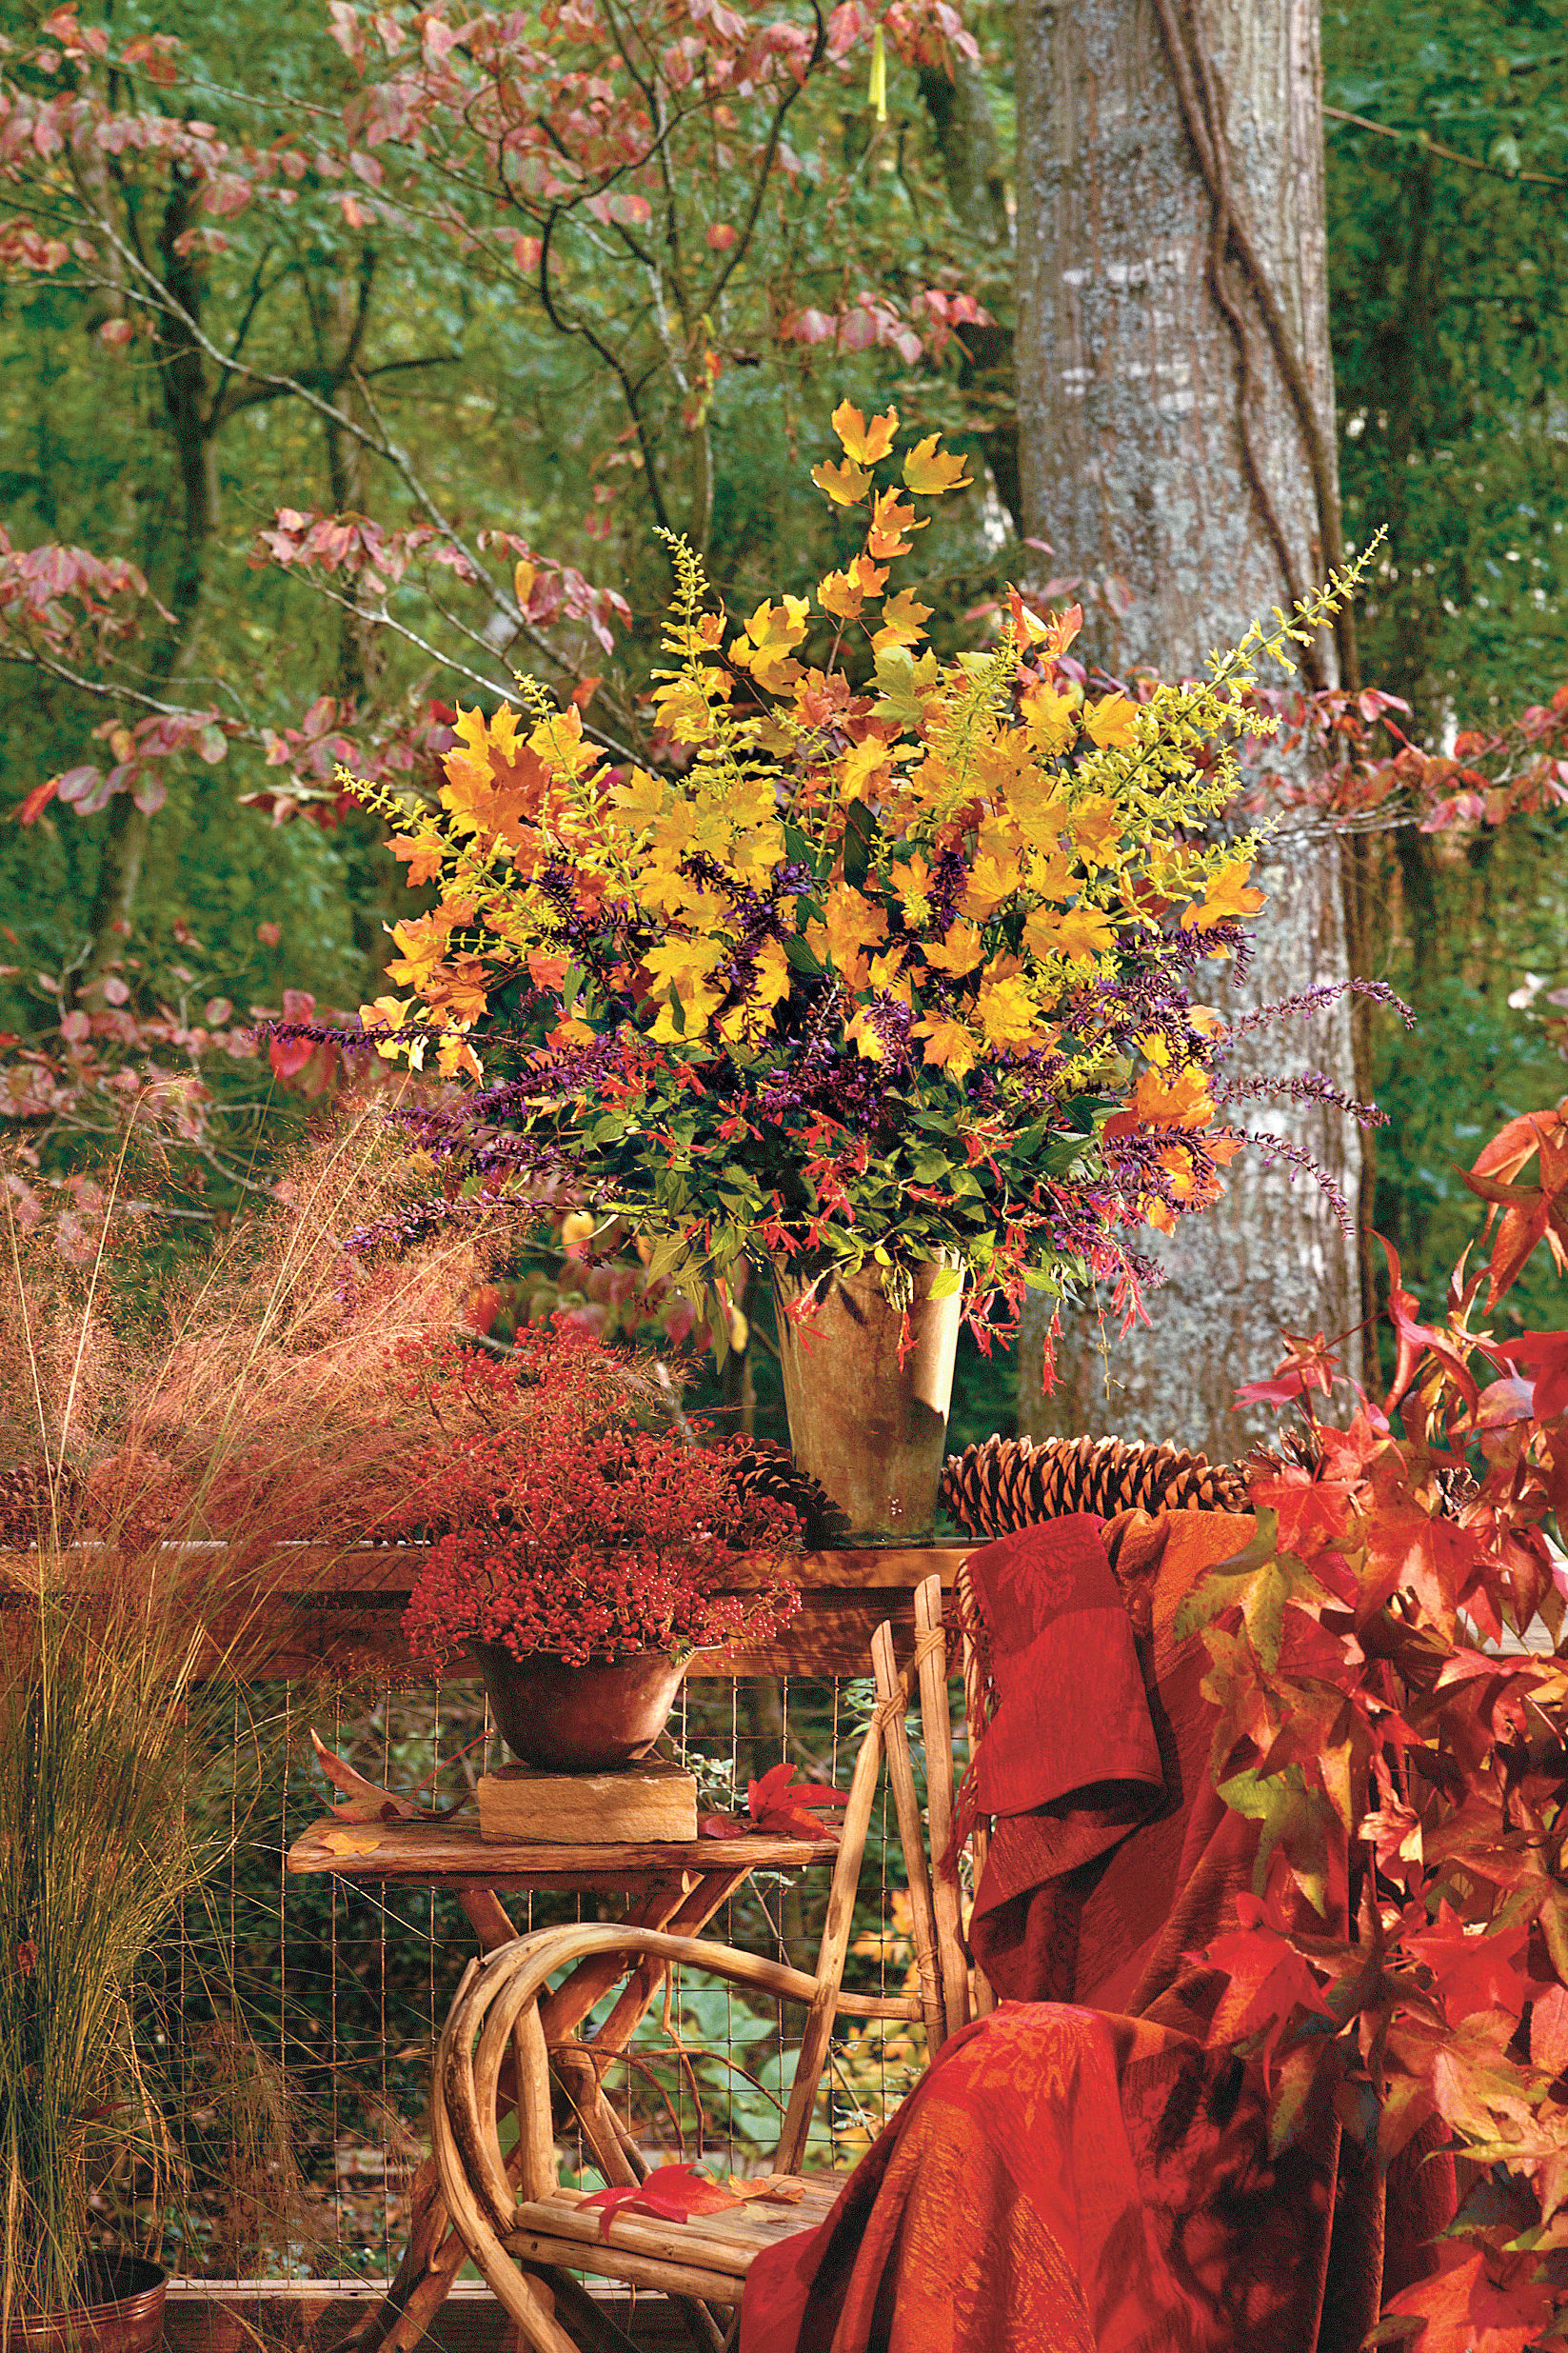 Cut-and-Stick Arrangements for Autumn